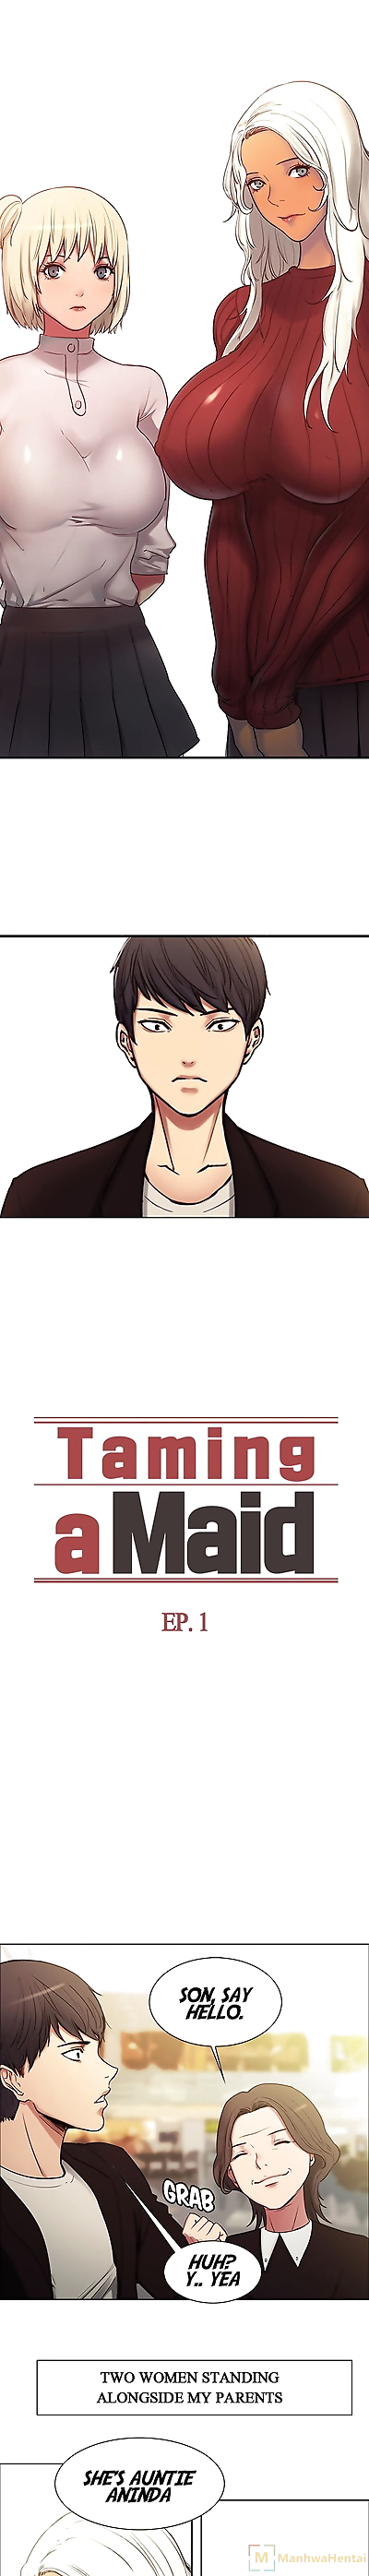 Serious Taming a Maid/Domesticate the Housekeeper Chapter 1 English